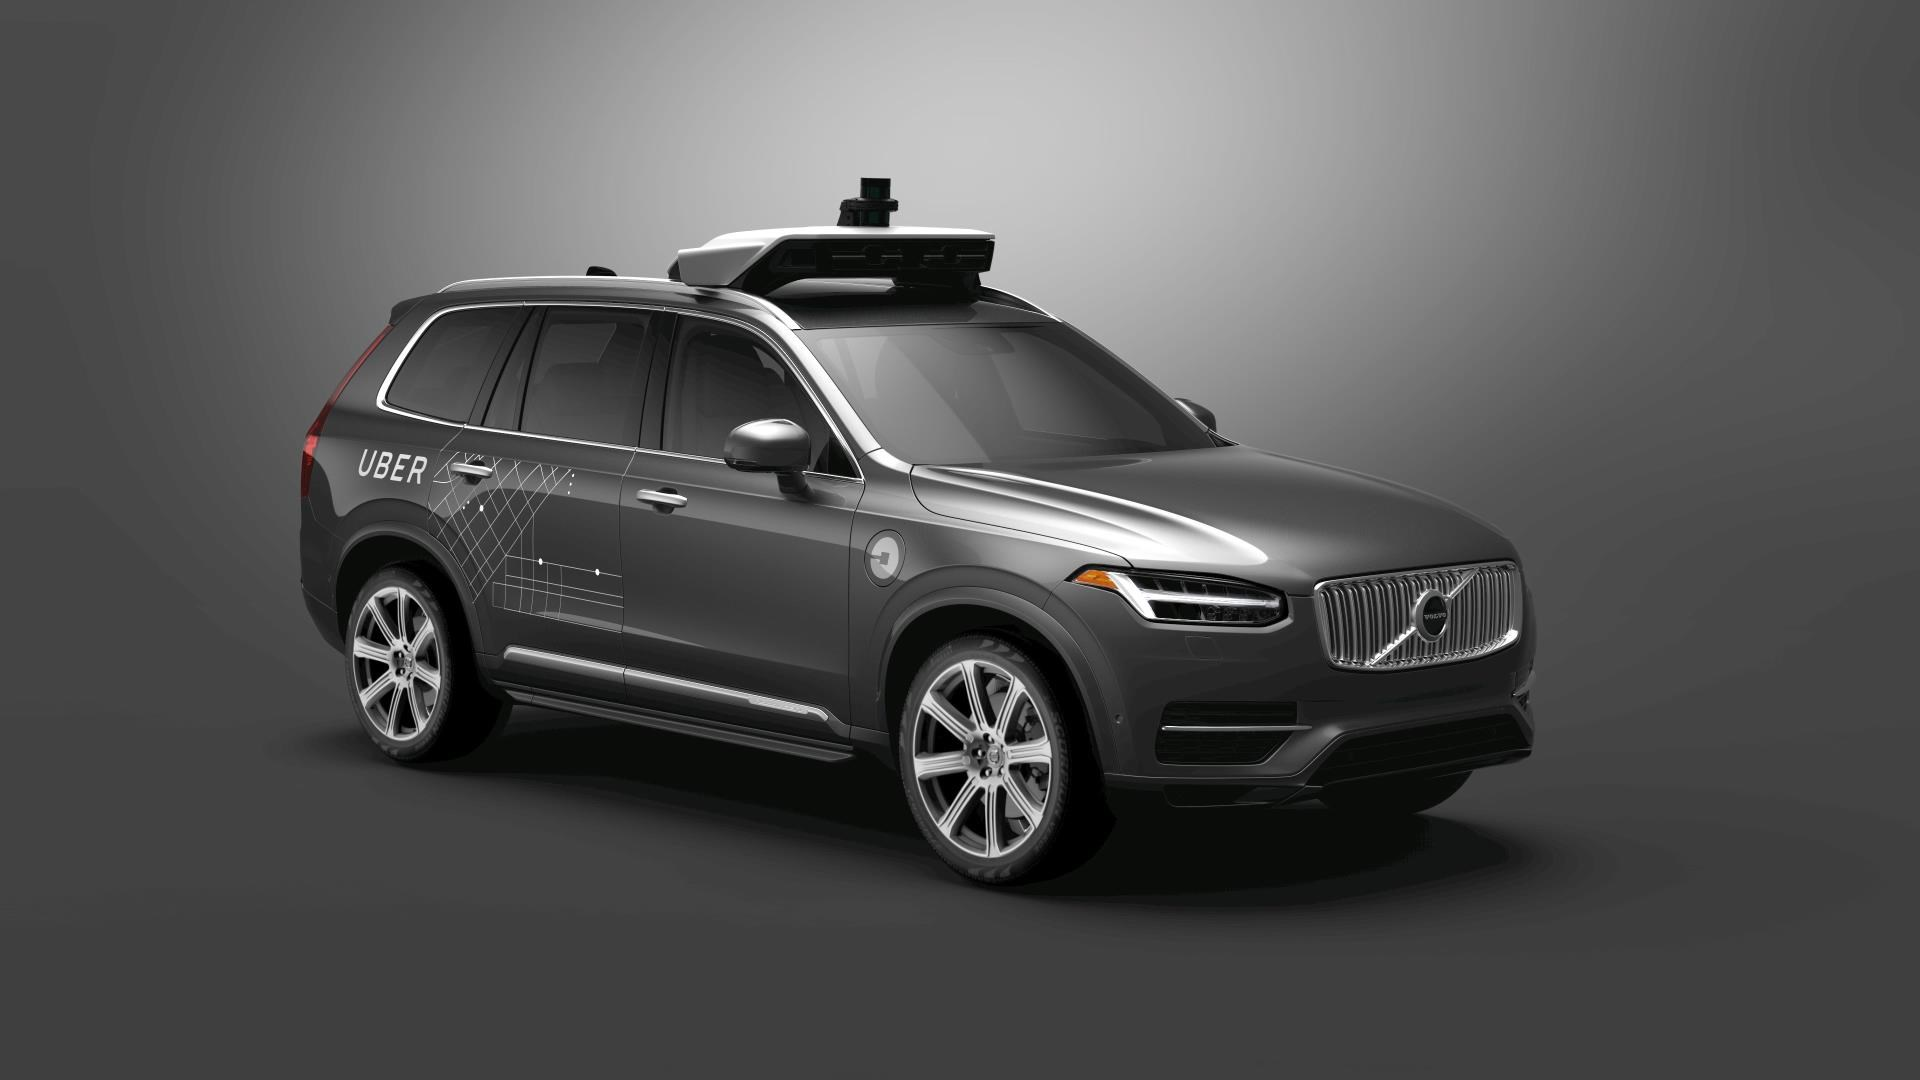 Uber files patent to reduce motion sickness for autonomous vehicle passengers